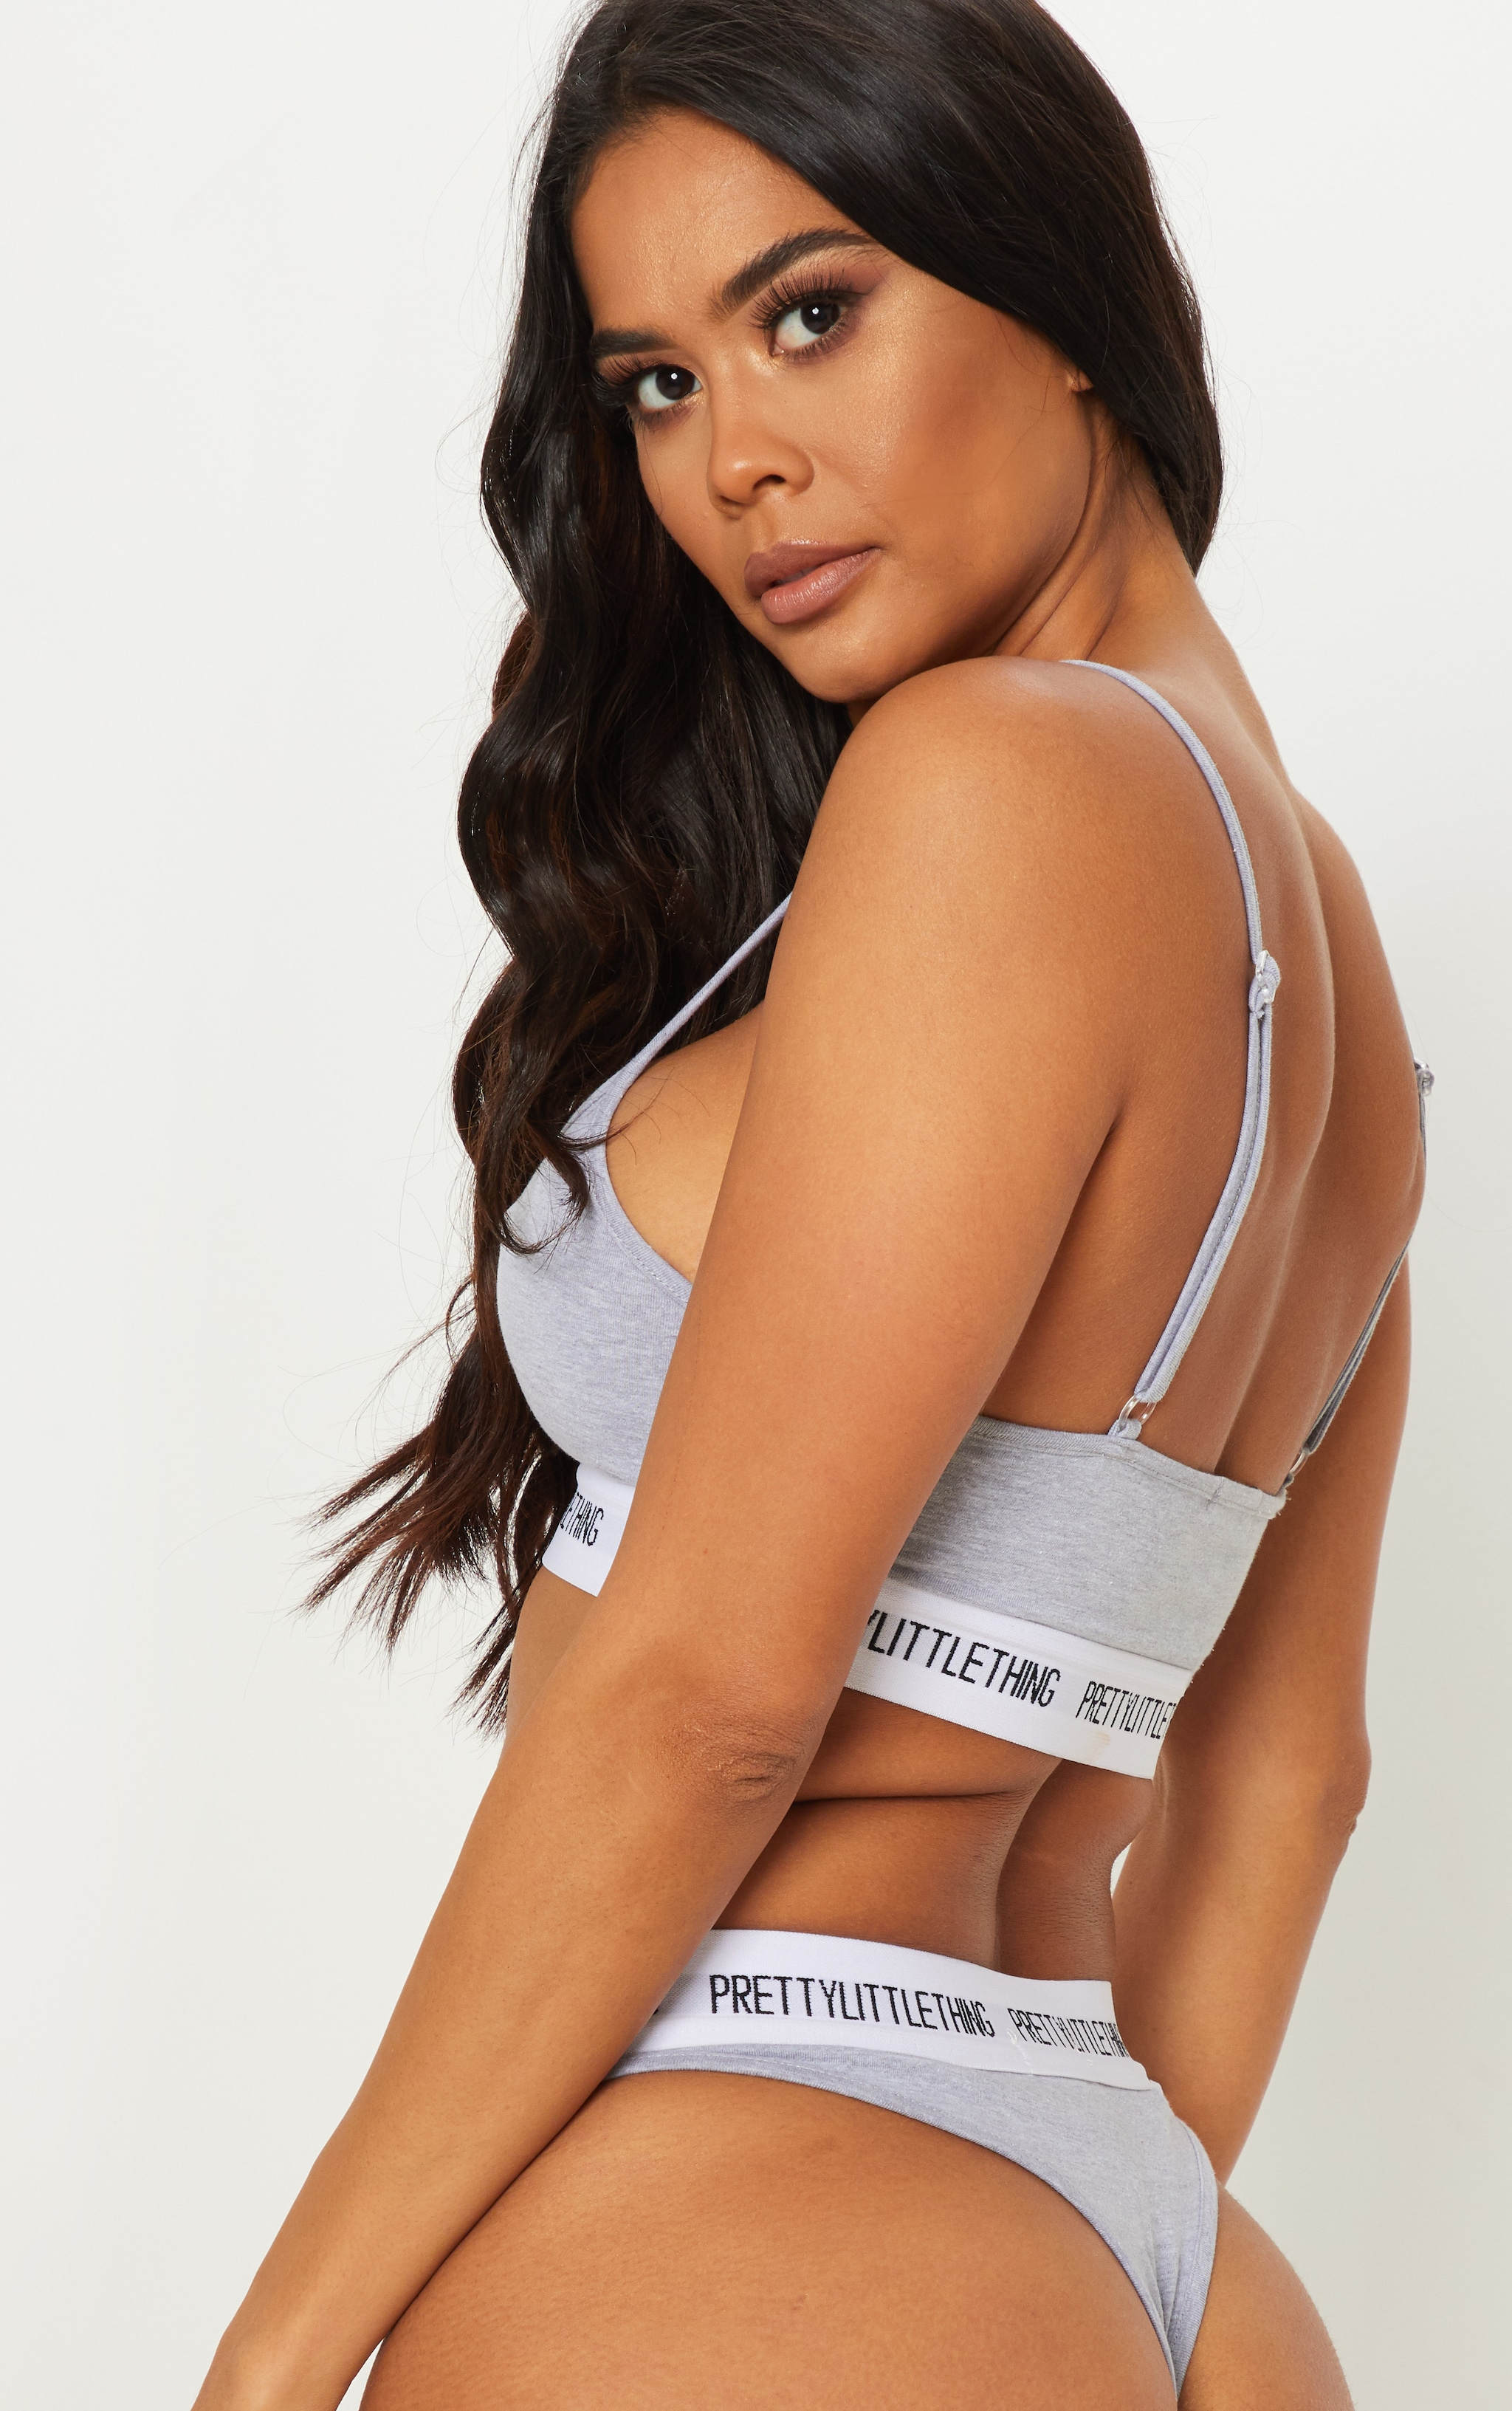 PRETTYLITTLETHING Light Grey Cut Out Bralet 2